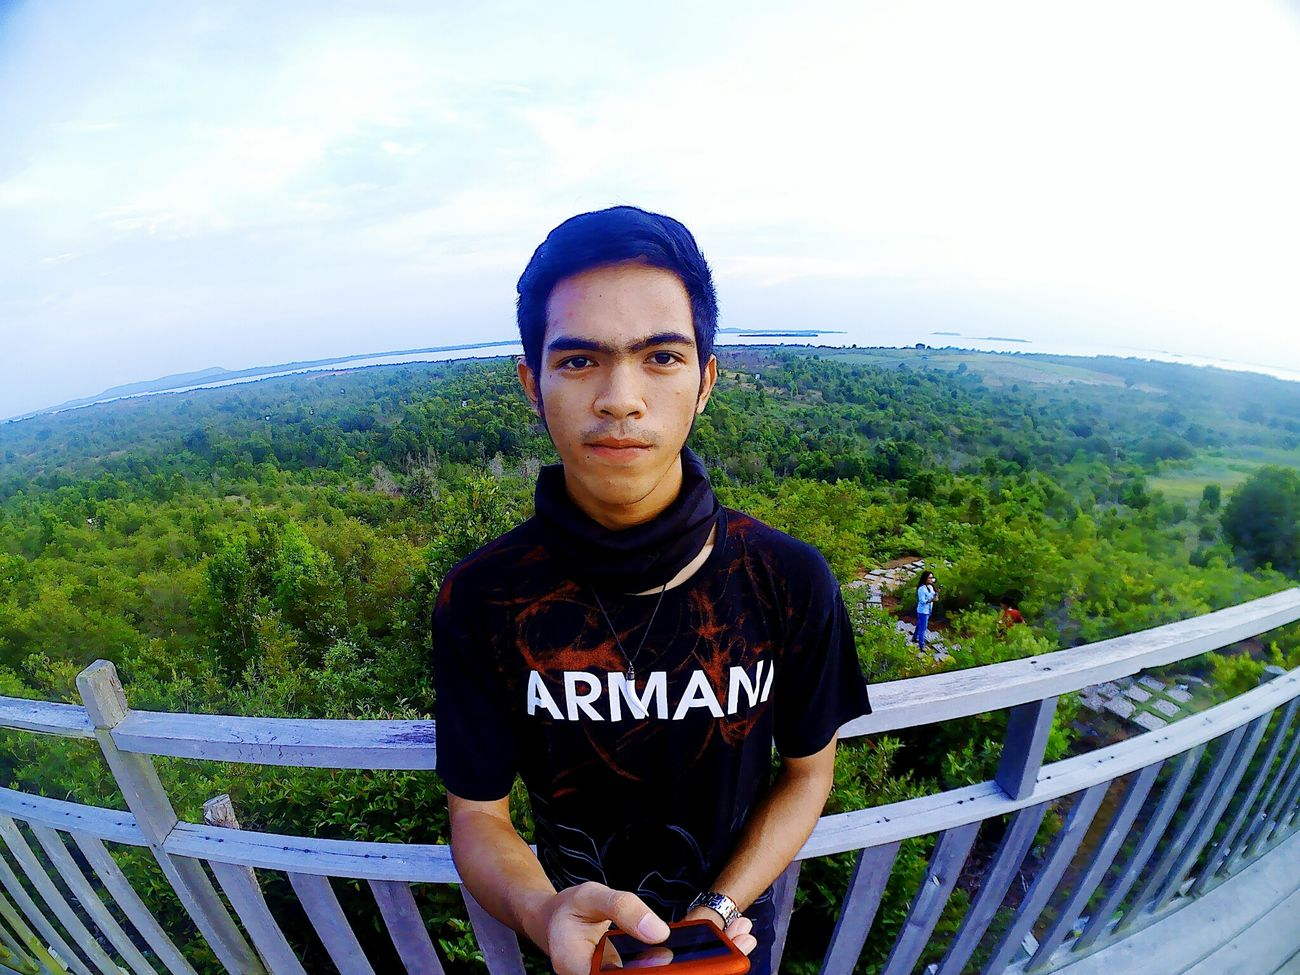 Alam menunggu untuk di jelajah.. like my instagram : yogaanugrah19 Sky Railing Front View Casual Clothing Cloud - Sky Looking At Camera T-shirt Adult Outdoors People Day Adults Only Only Men Nature Young Adult Young Men Yellowclaw First Eyeem Photo